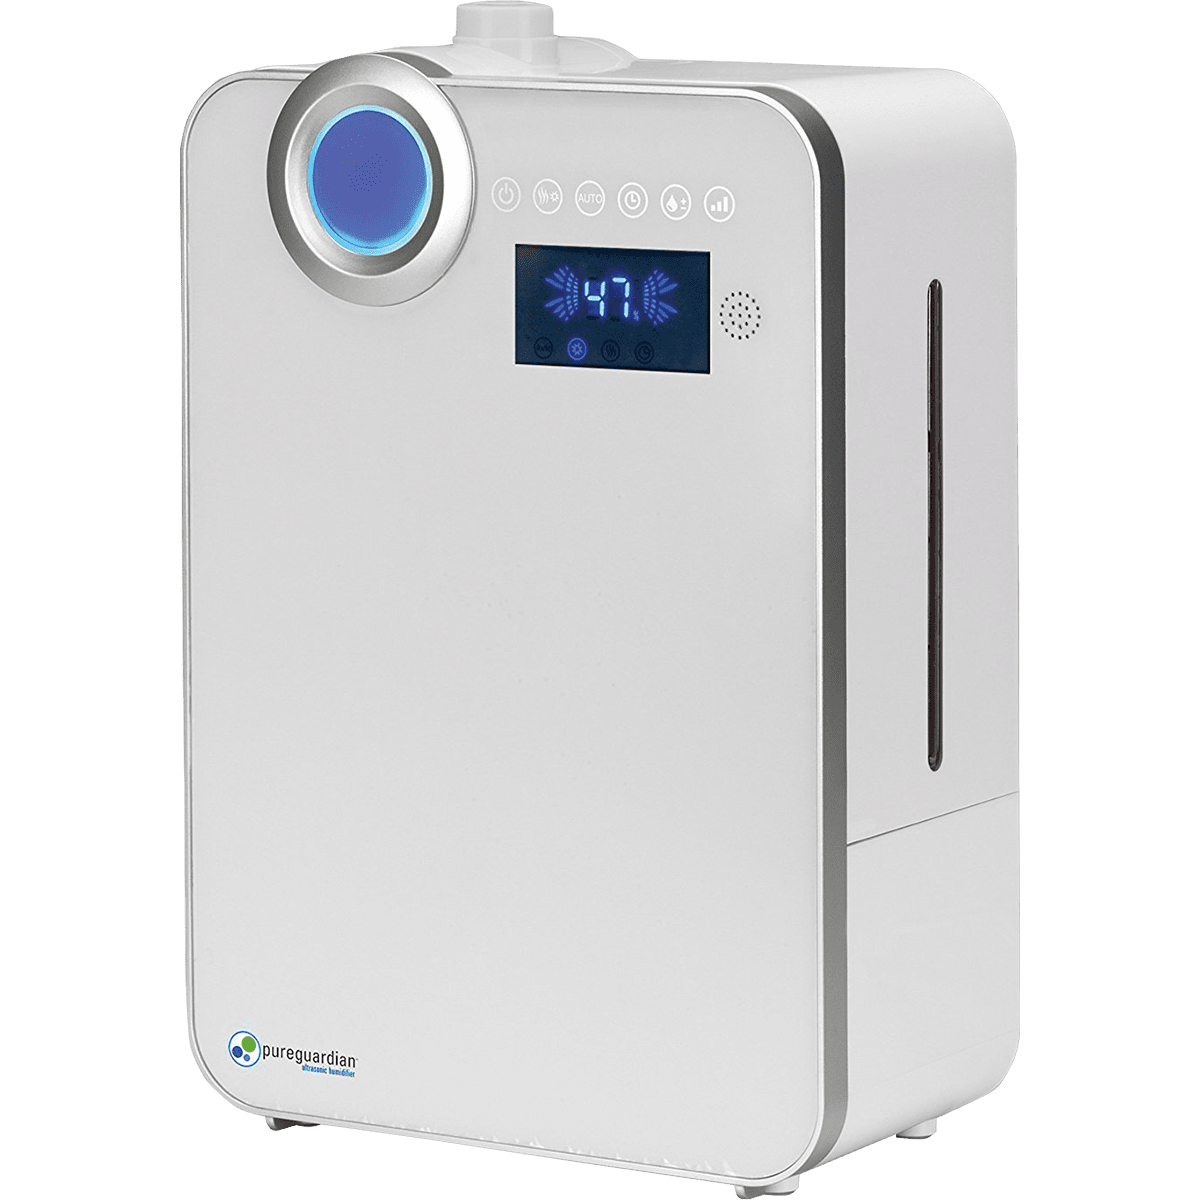 PureGuardian 90-Hour Smart Mist Ultrasonic Humidifier - H7550 ge3557